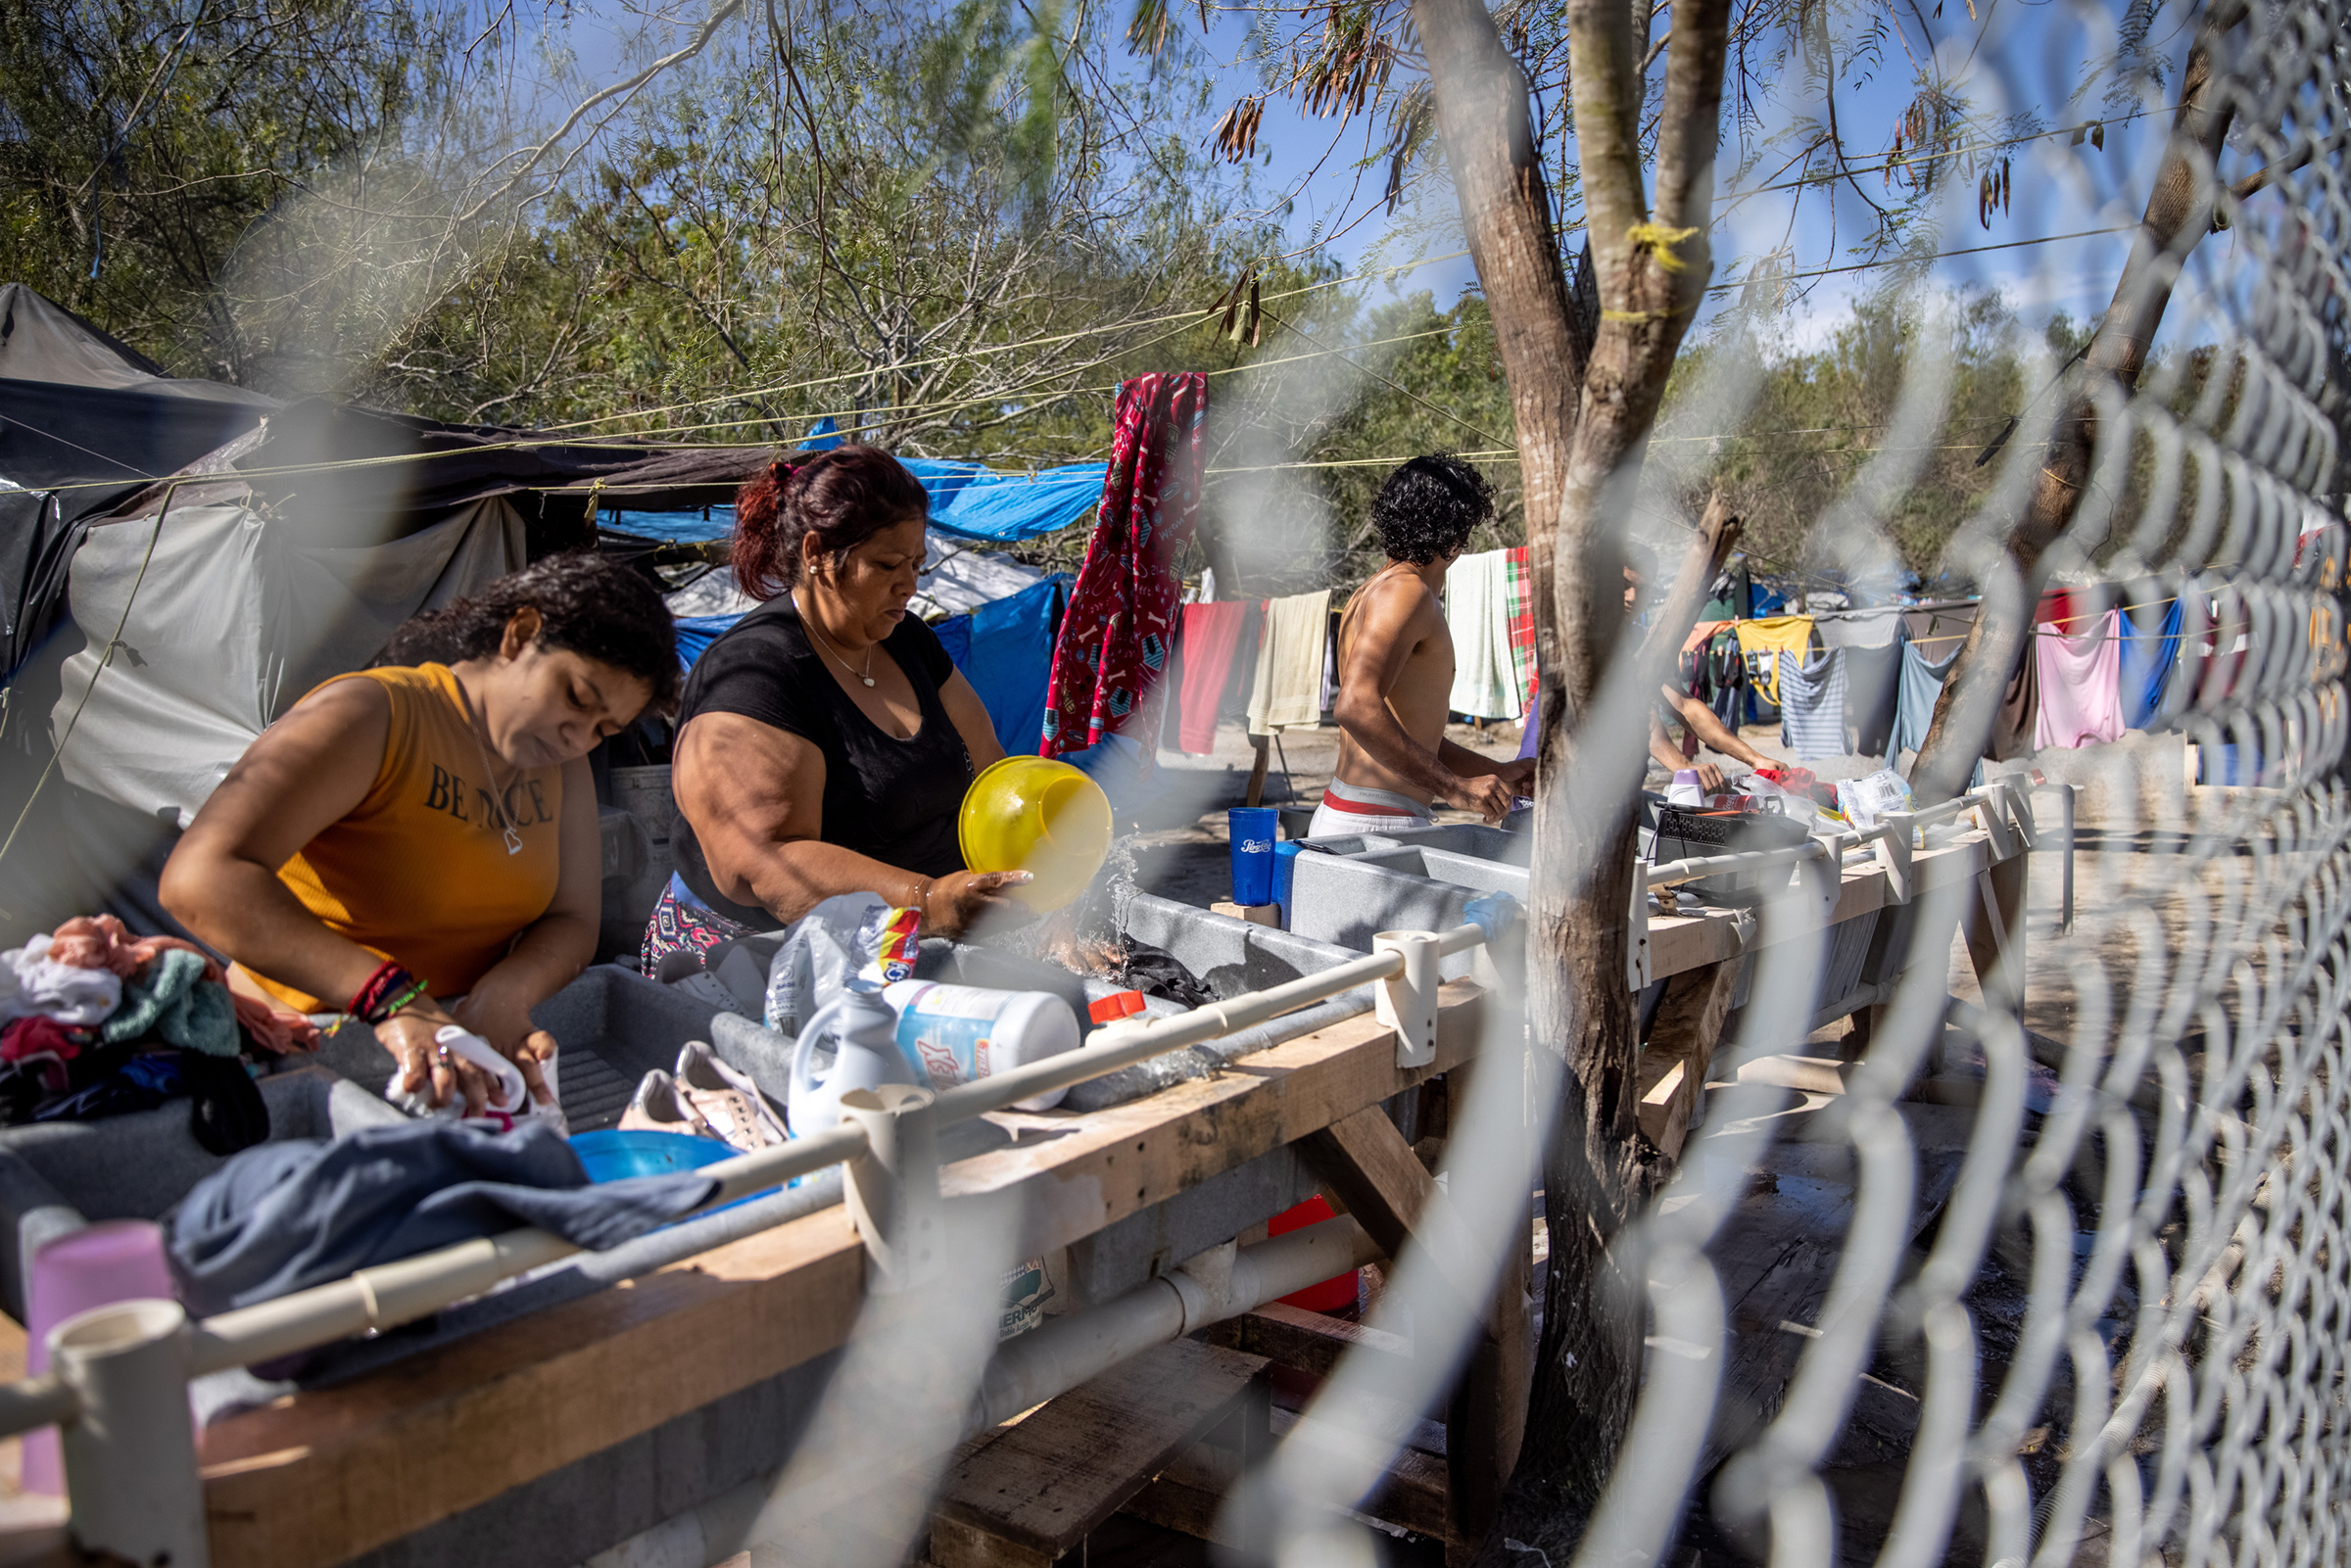 Asylum seekers washing clothing inside a camp in Matamoros, Mexico on Feb. 7, 2021.